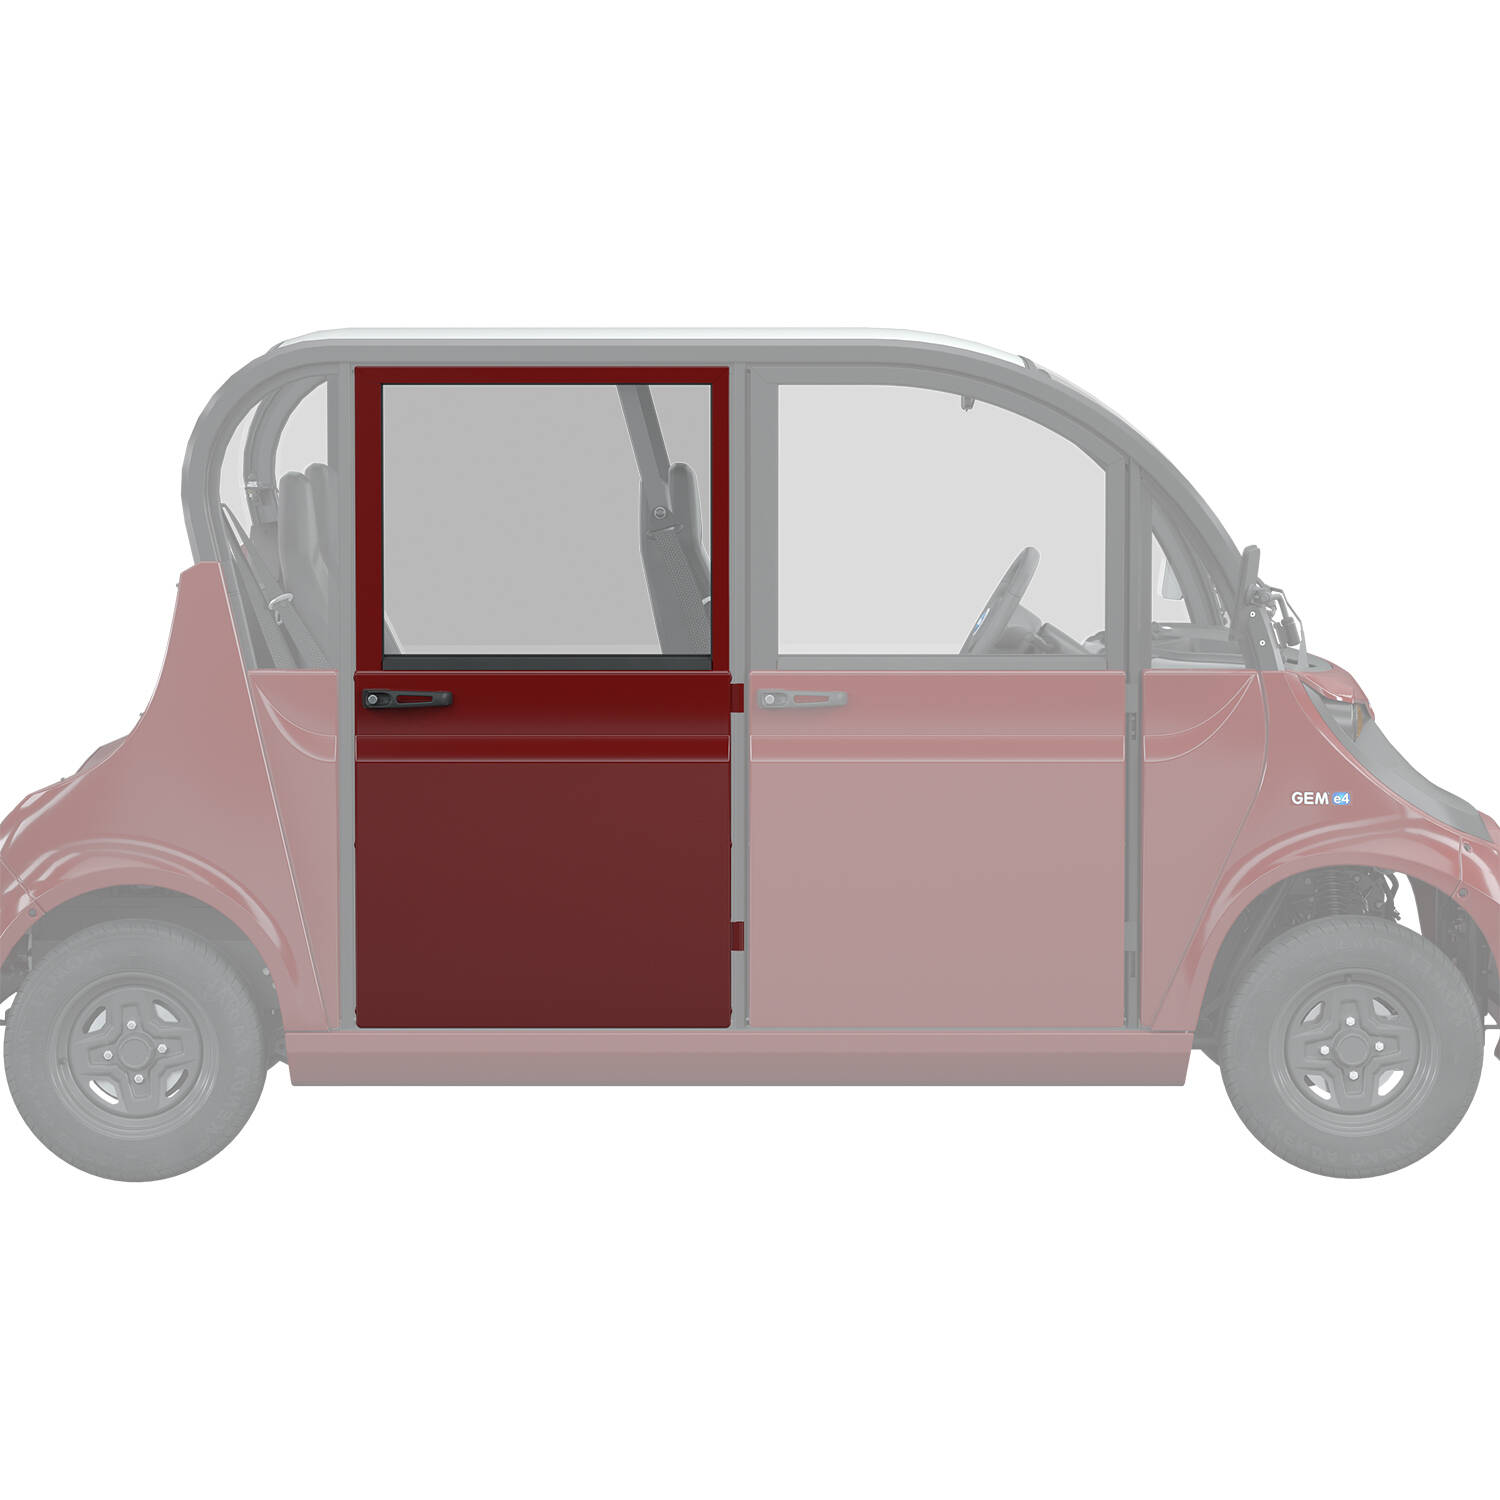 Full Middle/Rear Door Right, Red